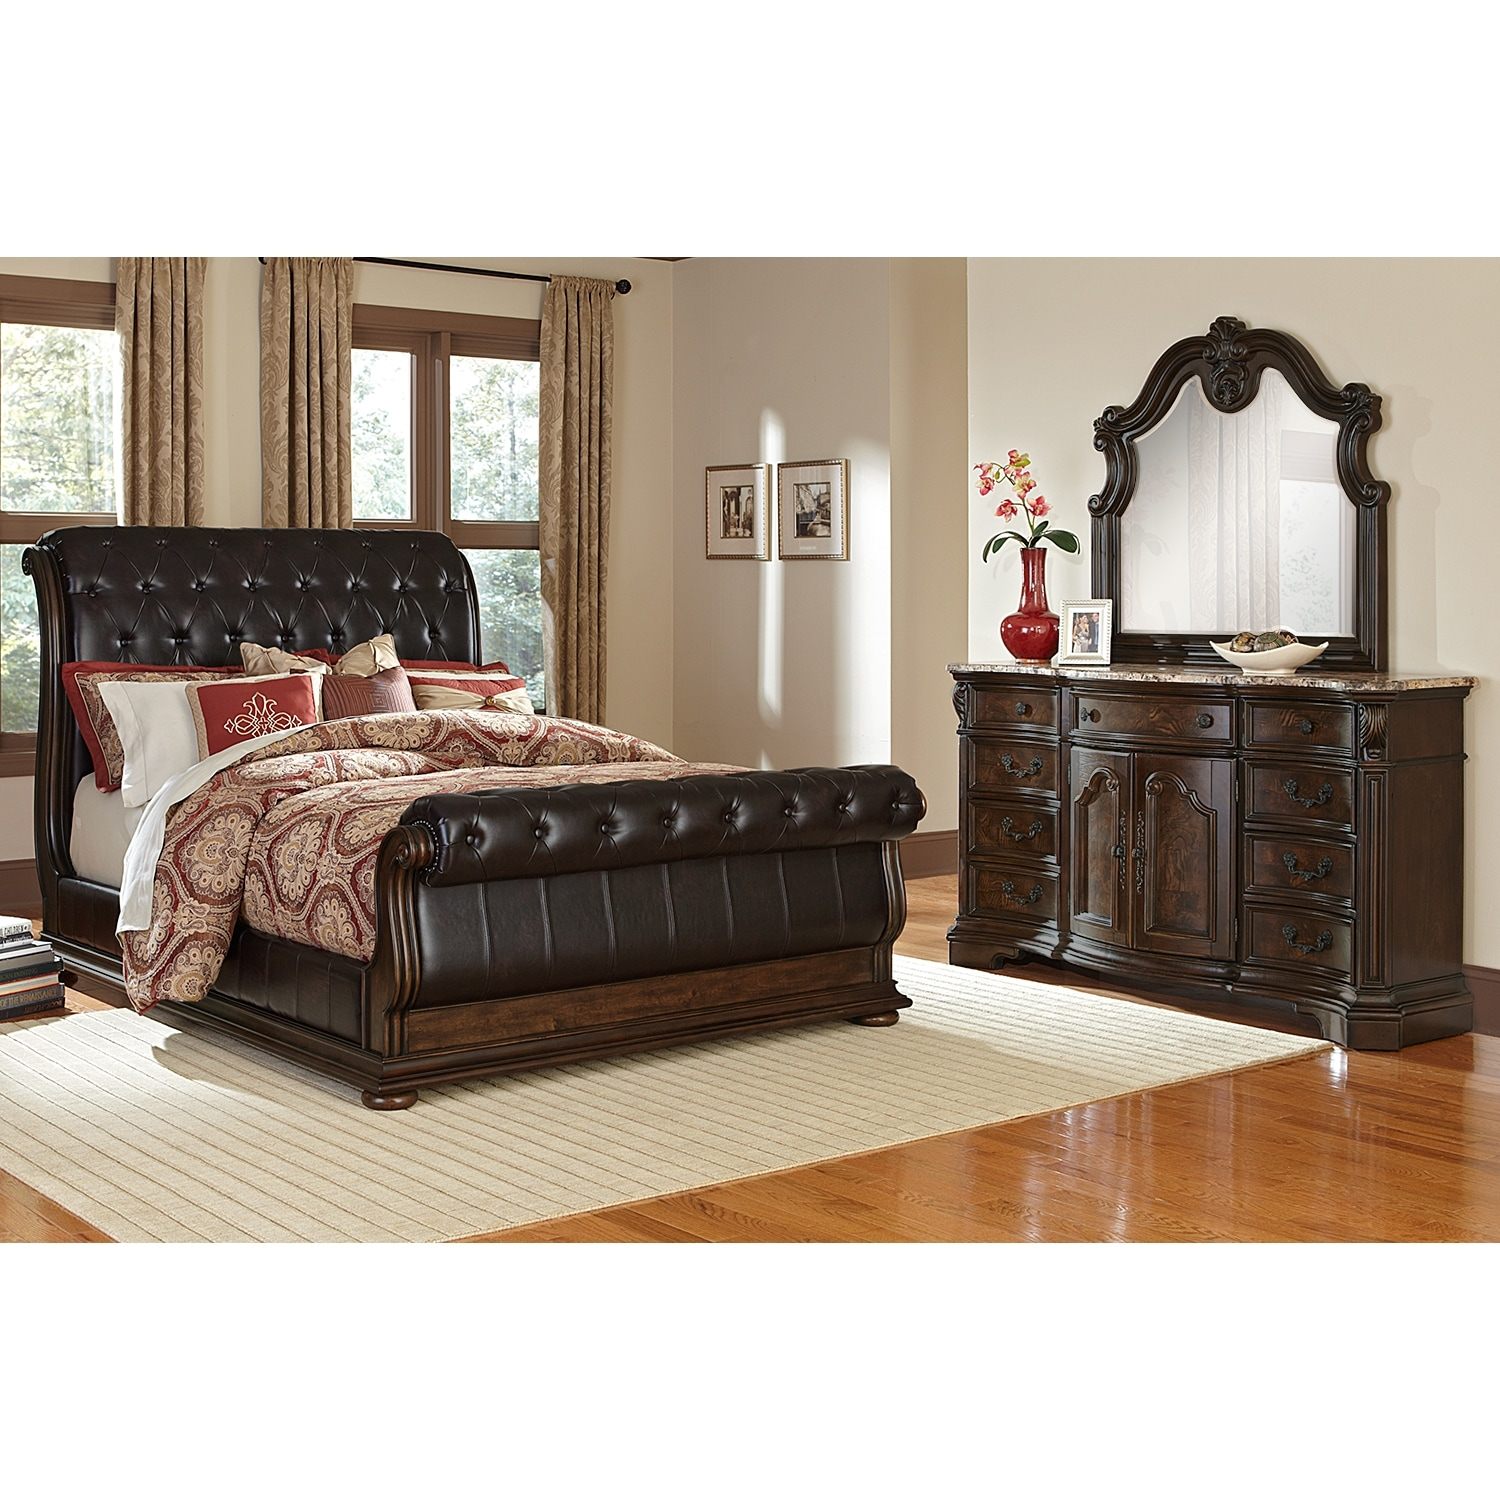 value city bedroom furniture monticello sleigh bed pecan value city furniture 17686